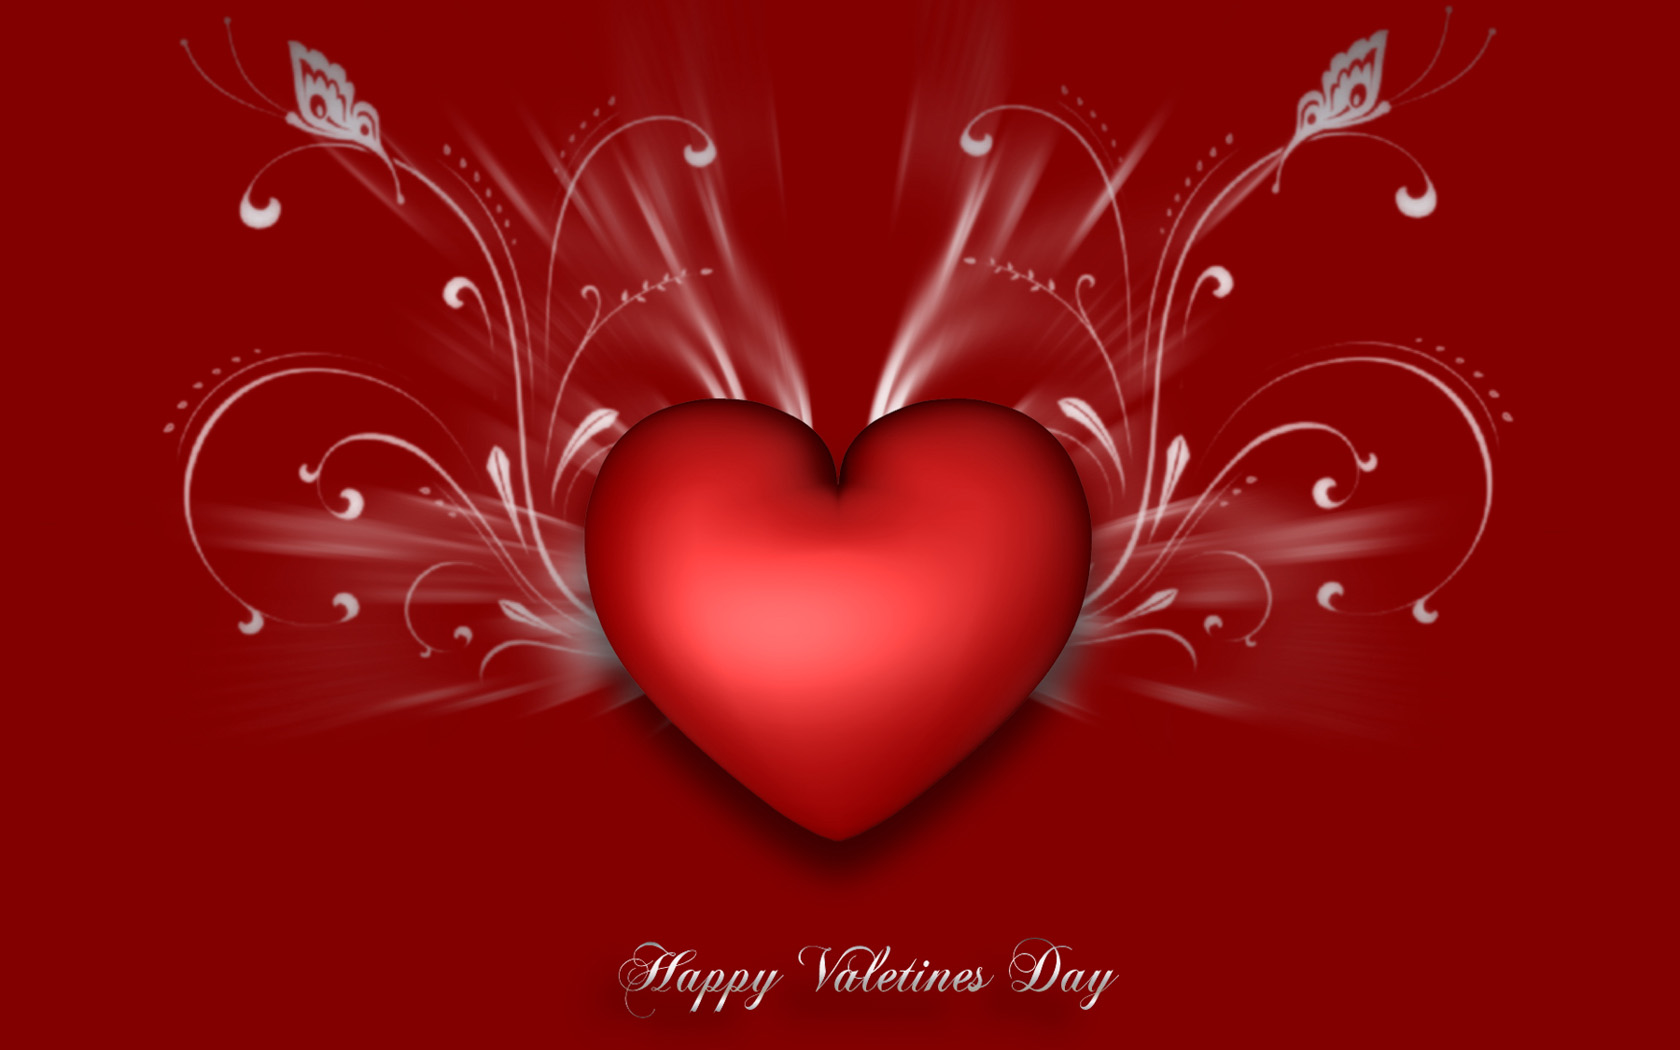 SMS offer to secure Valentines Day bookings - Phorest Blog